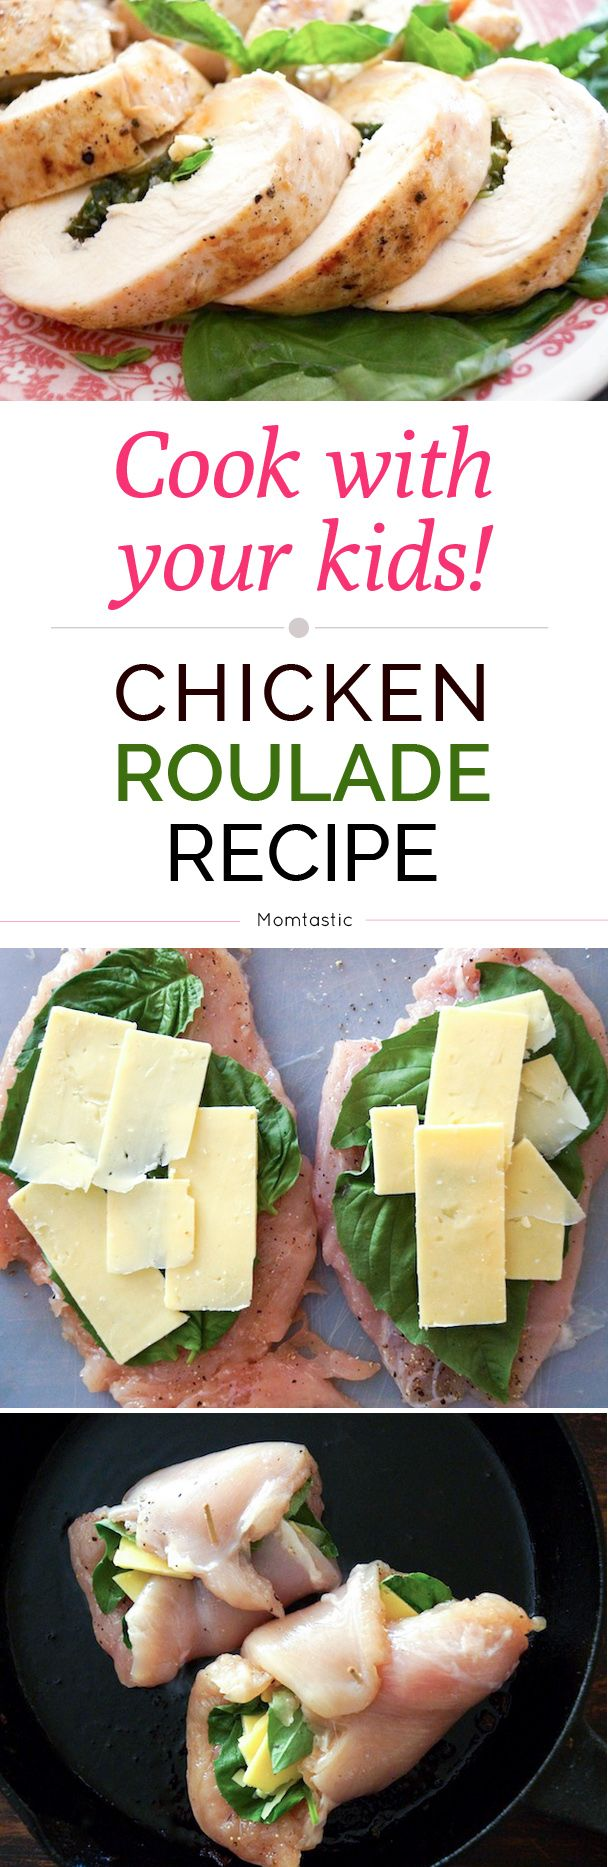 Cook with your kids: Chicken Roulade Recipe